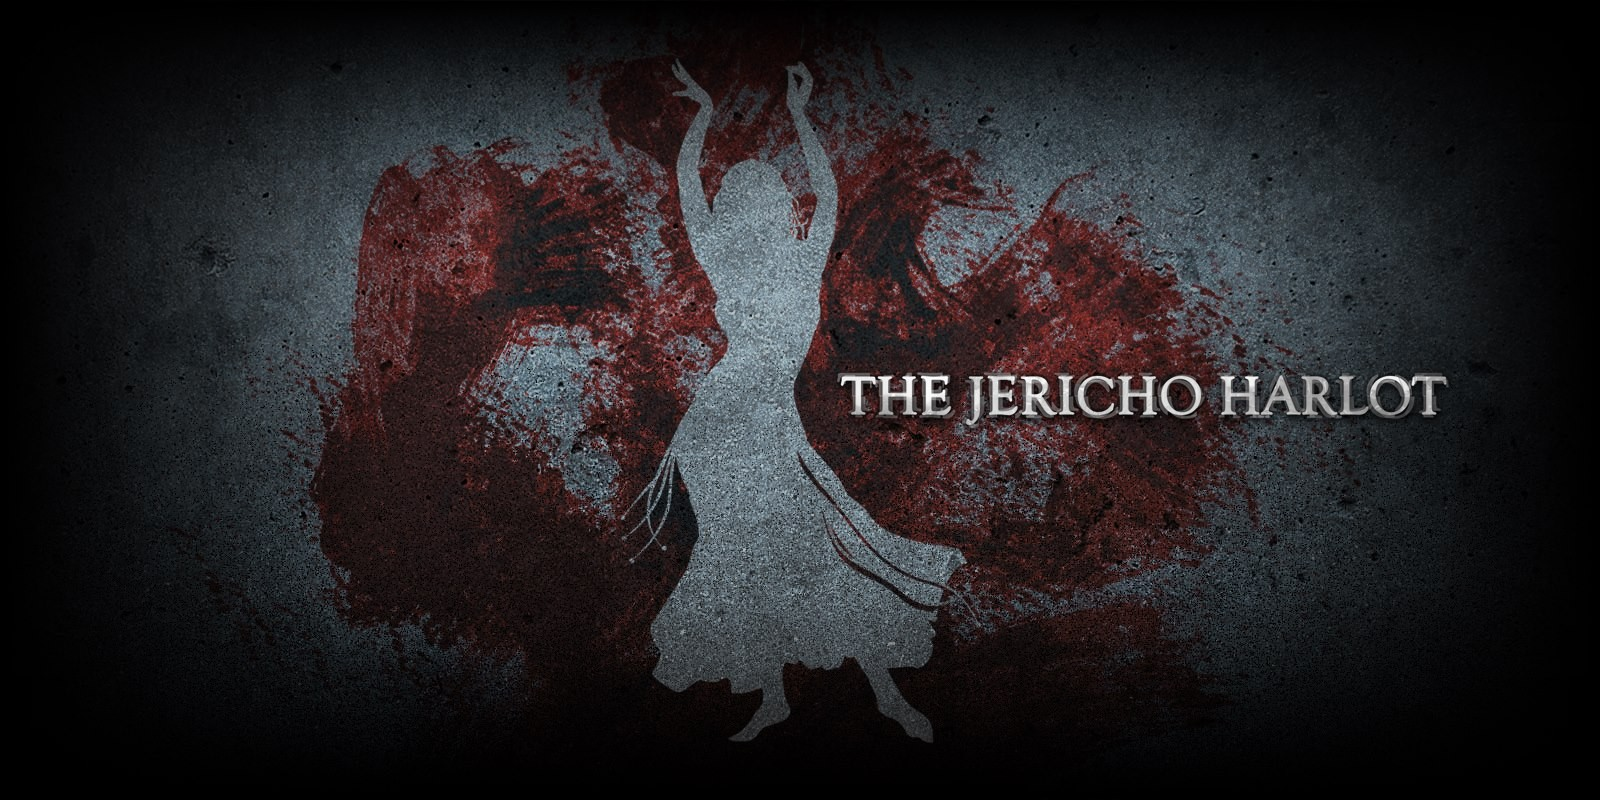 The Jericho Harlot